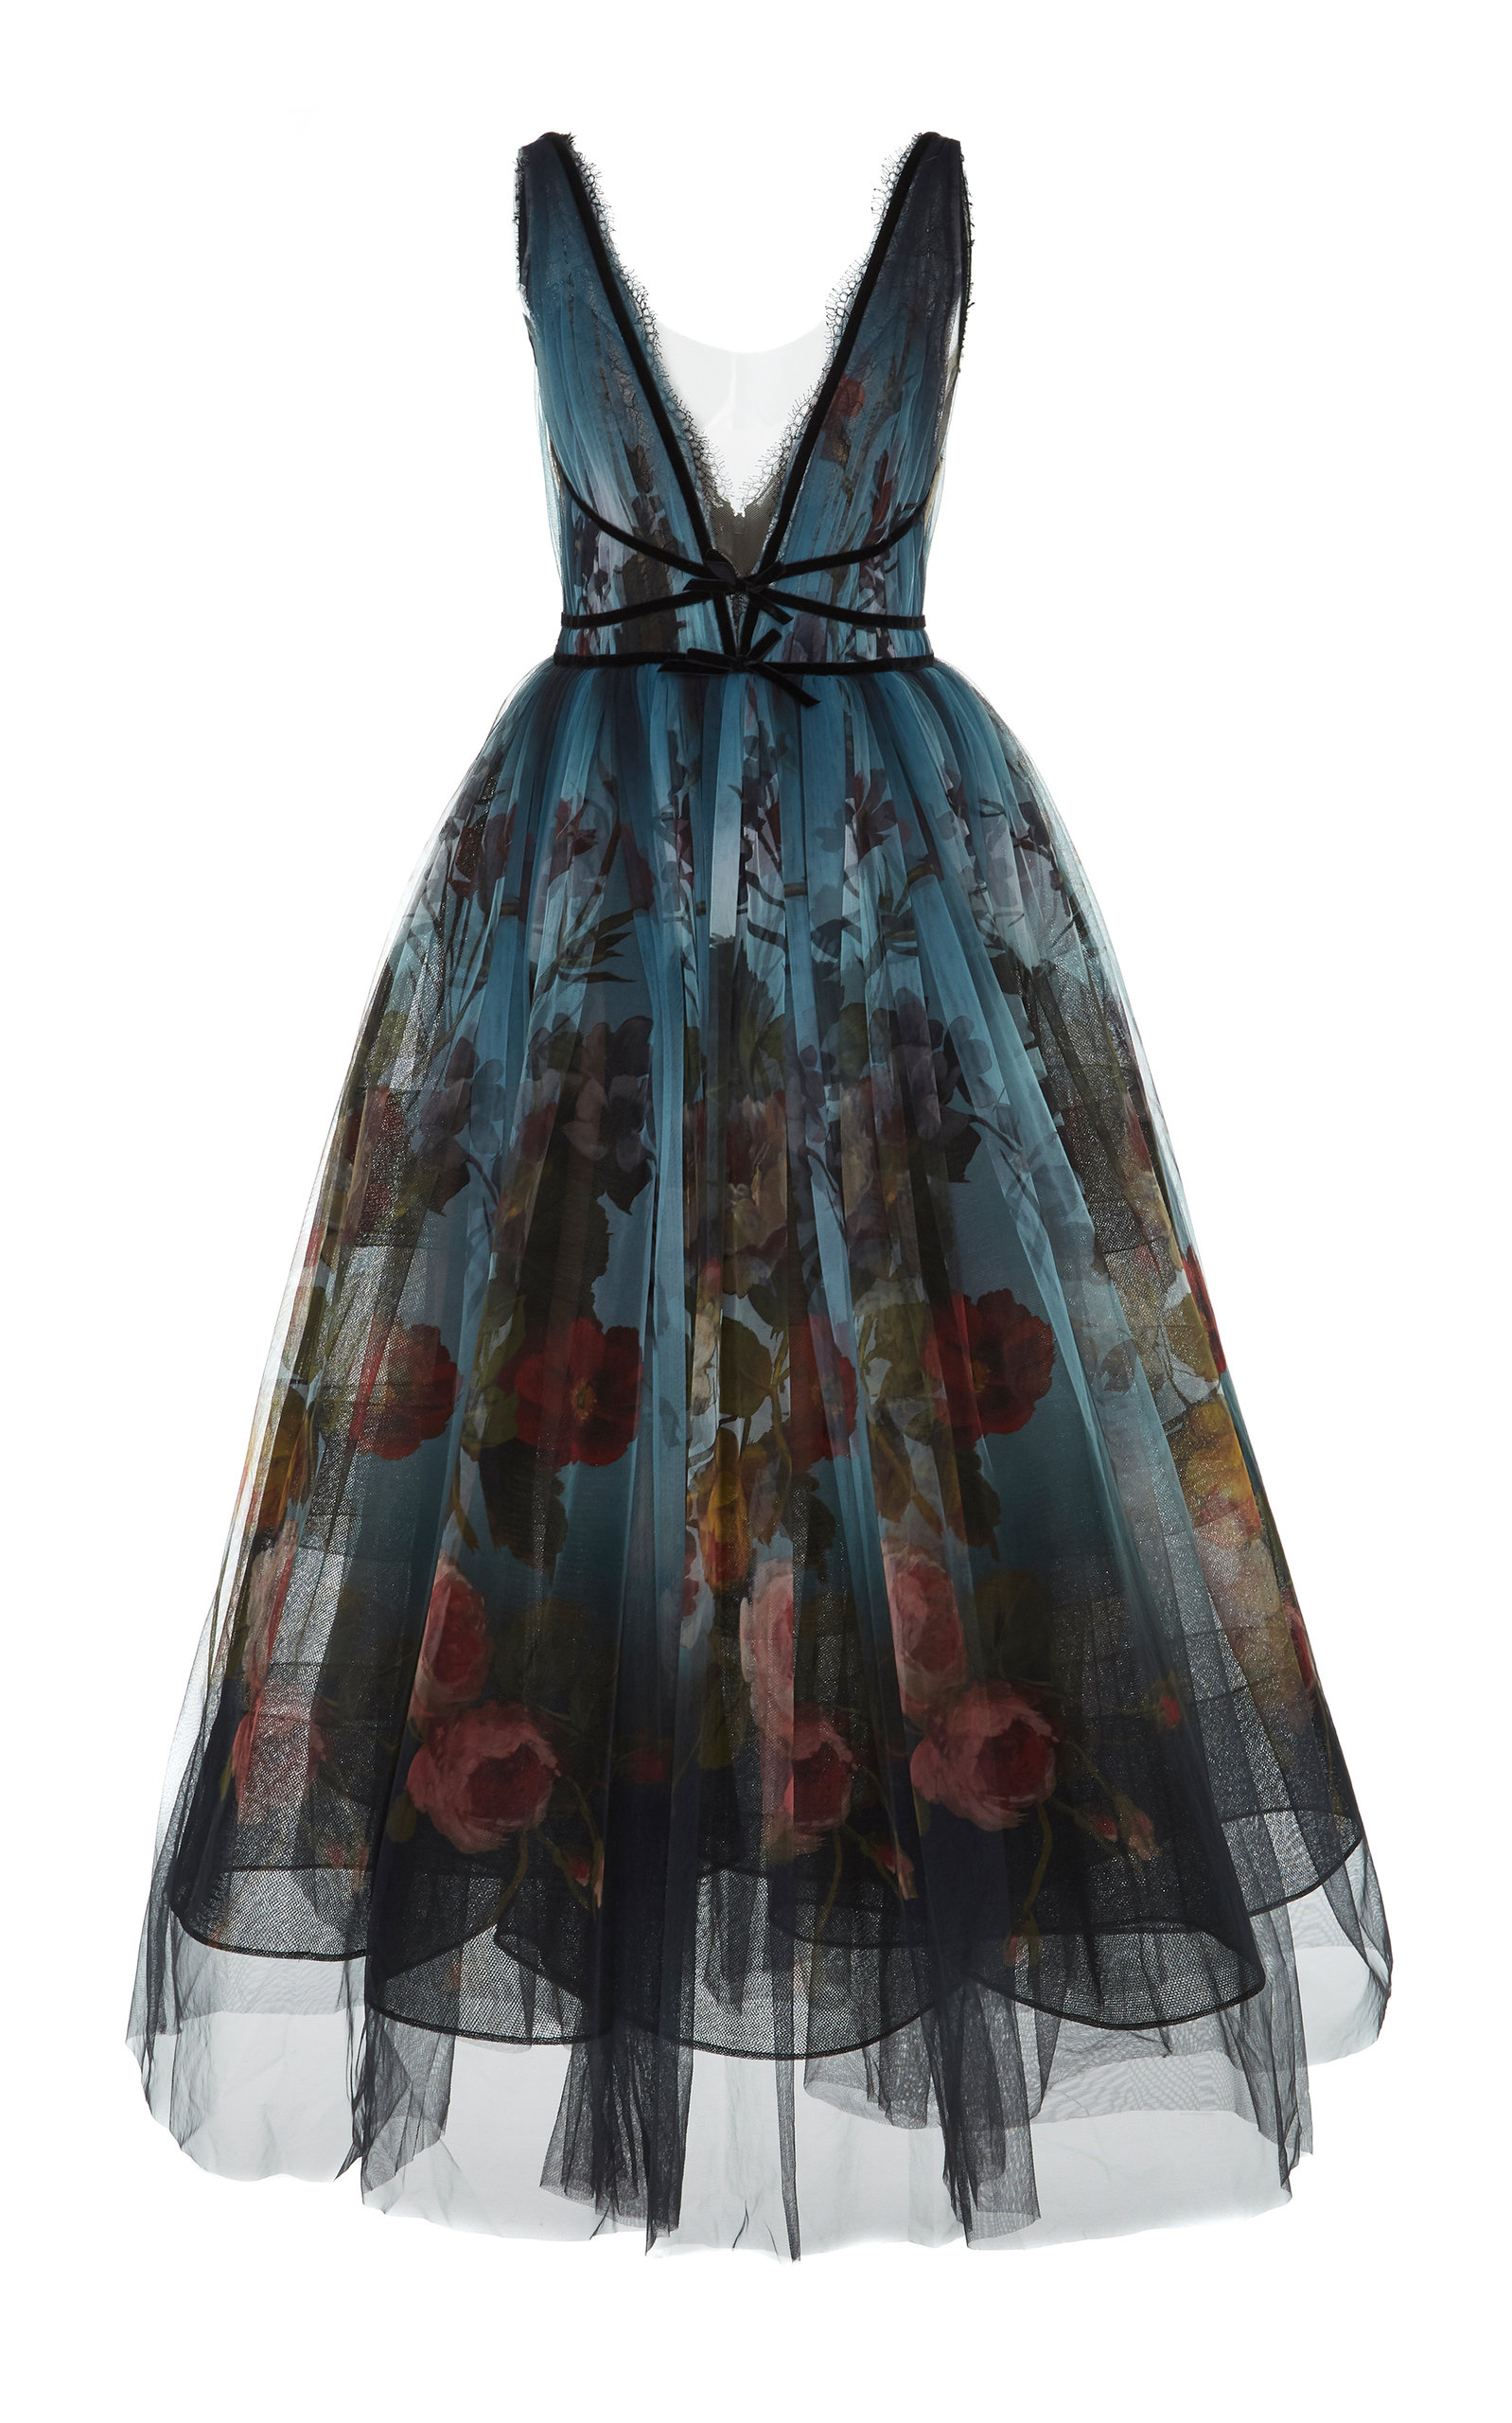 MARCHESA Ombre Floral Print Tulle Tea Length Dress in Blue